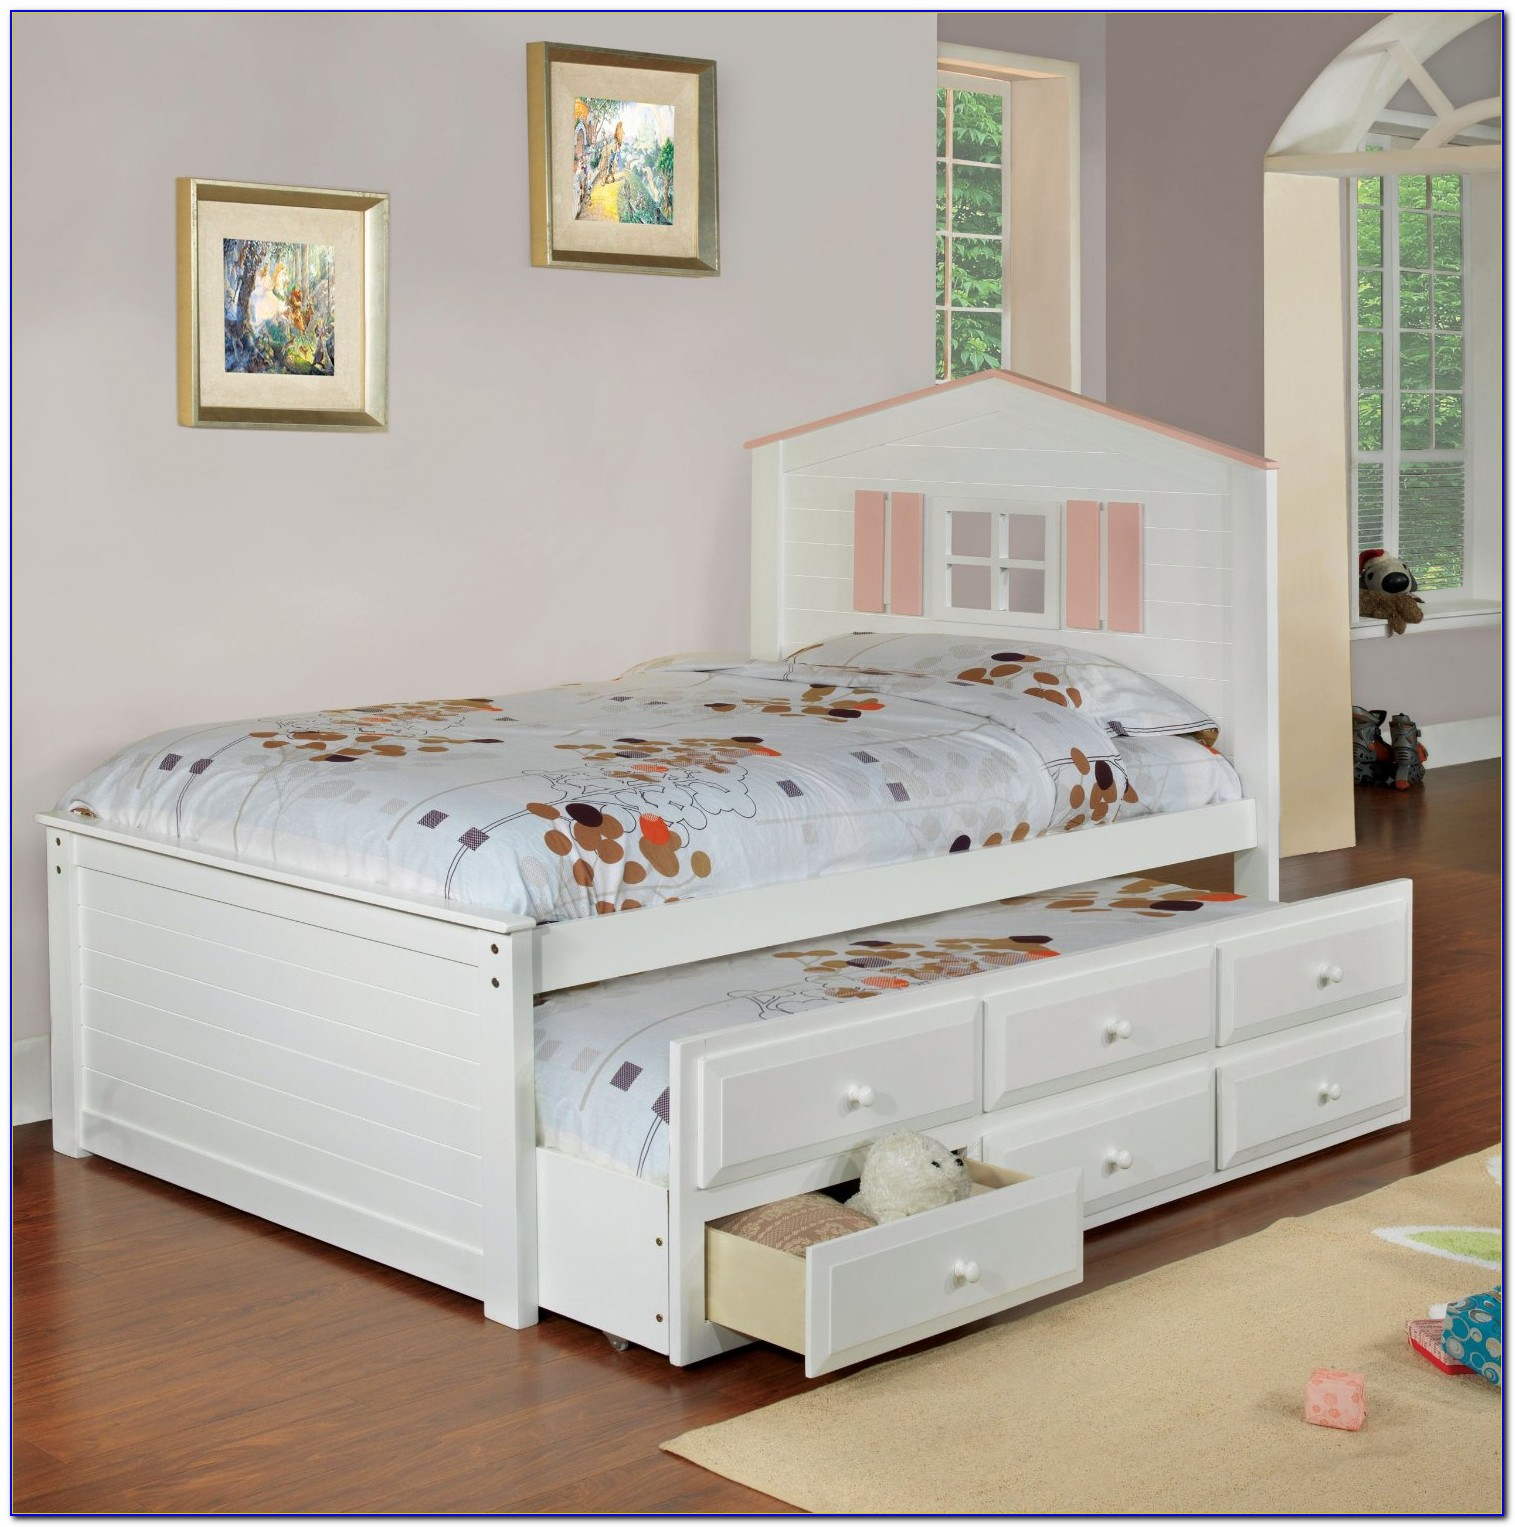 Bed With Drawers Underneath King